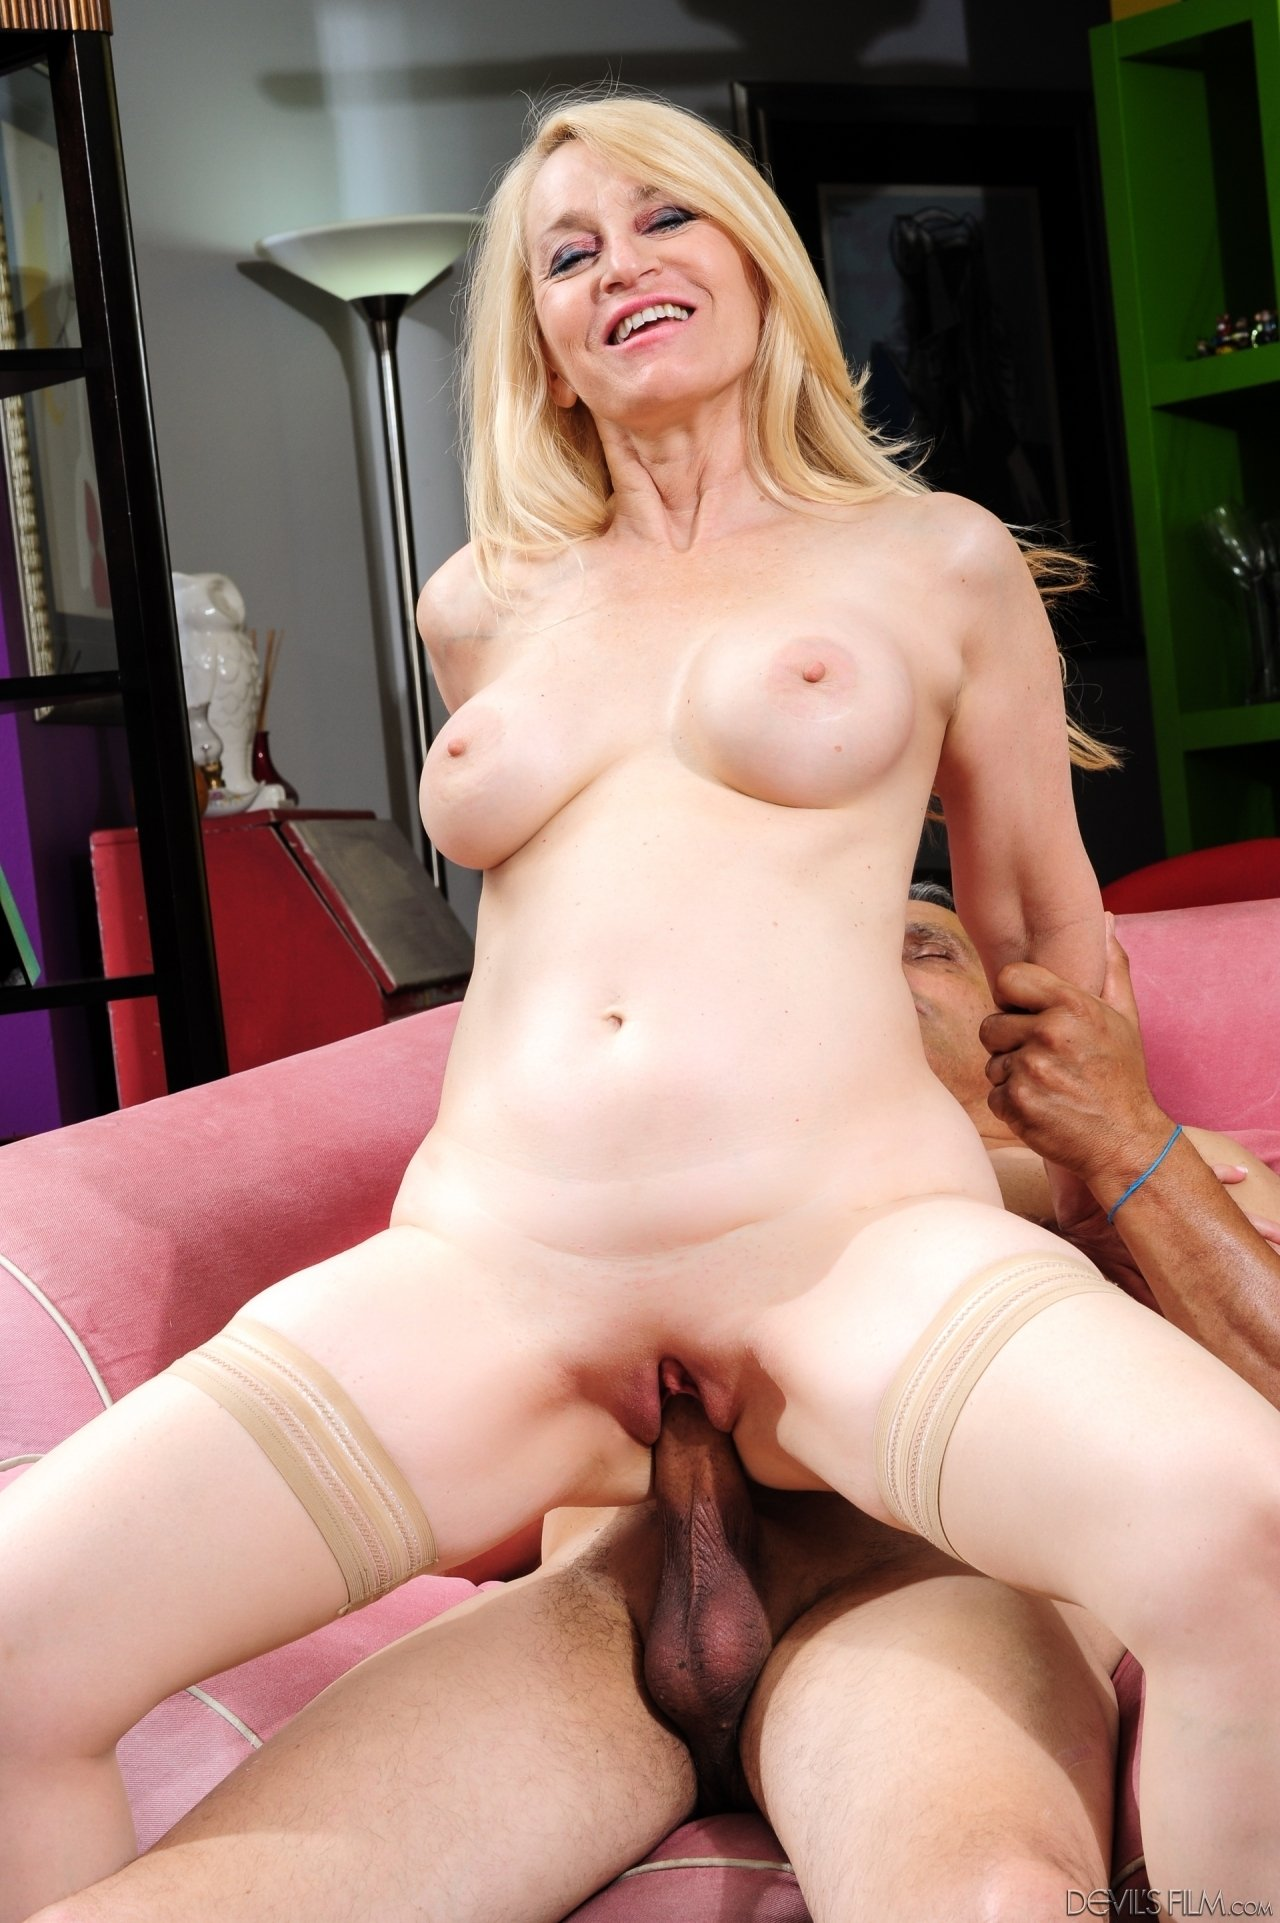 kayden kross blowjob hot milf on milf